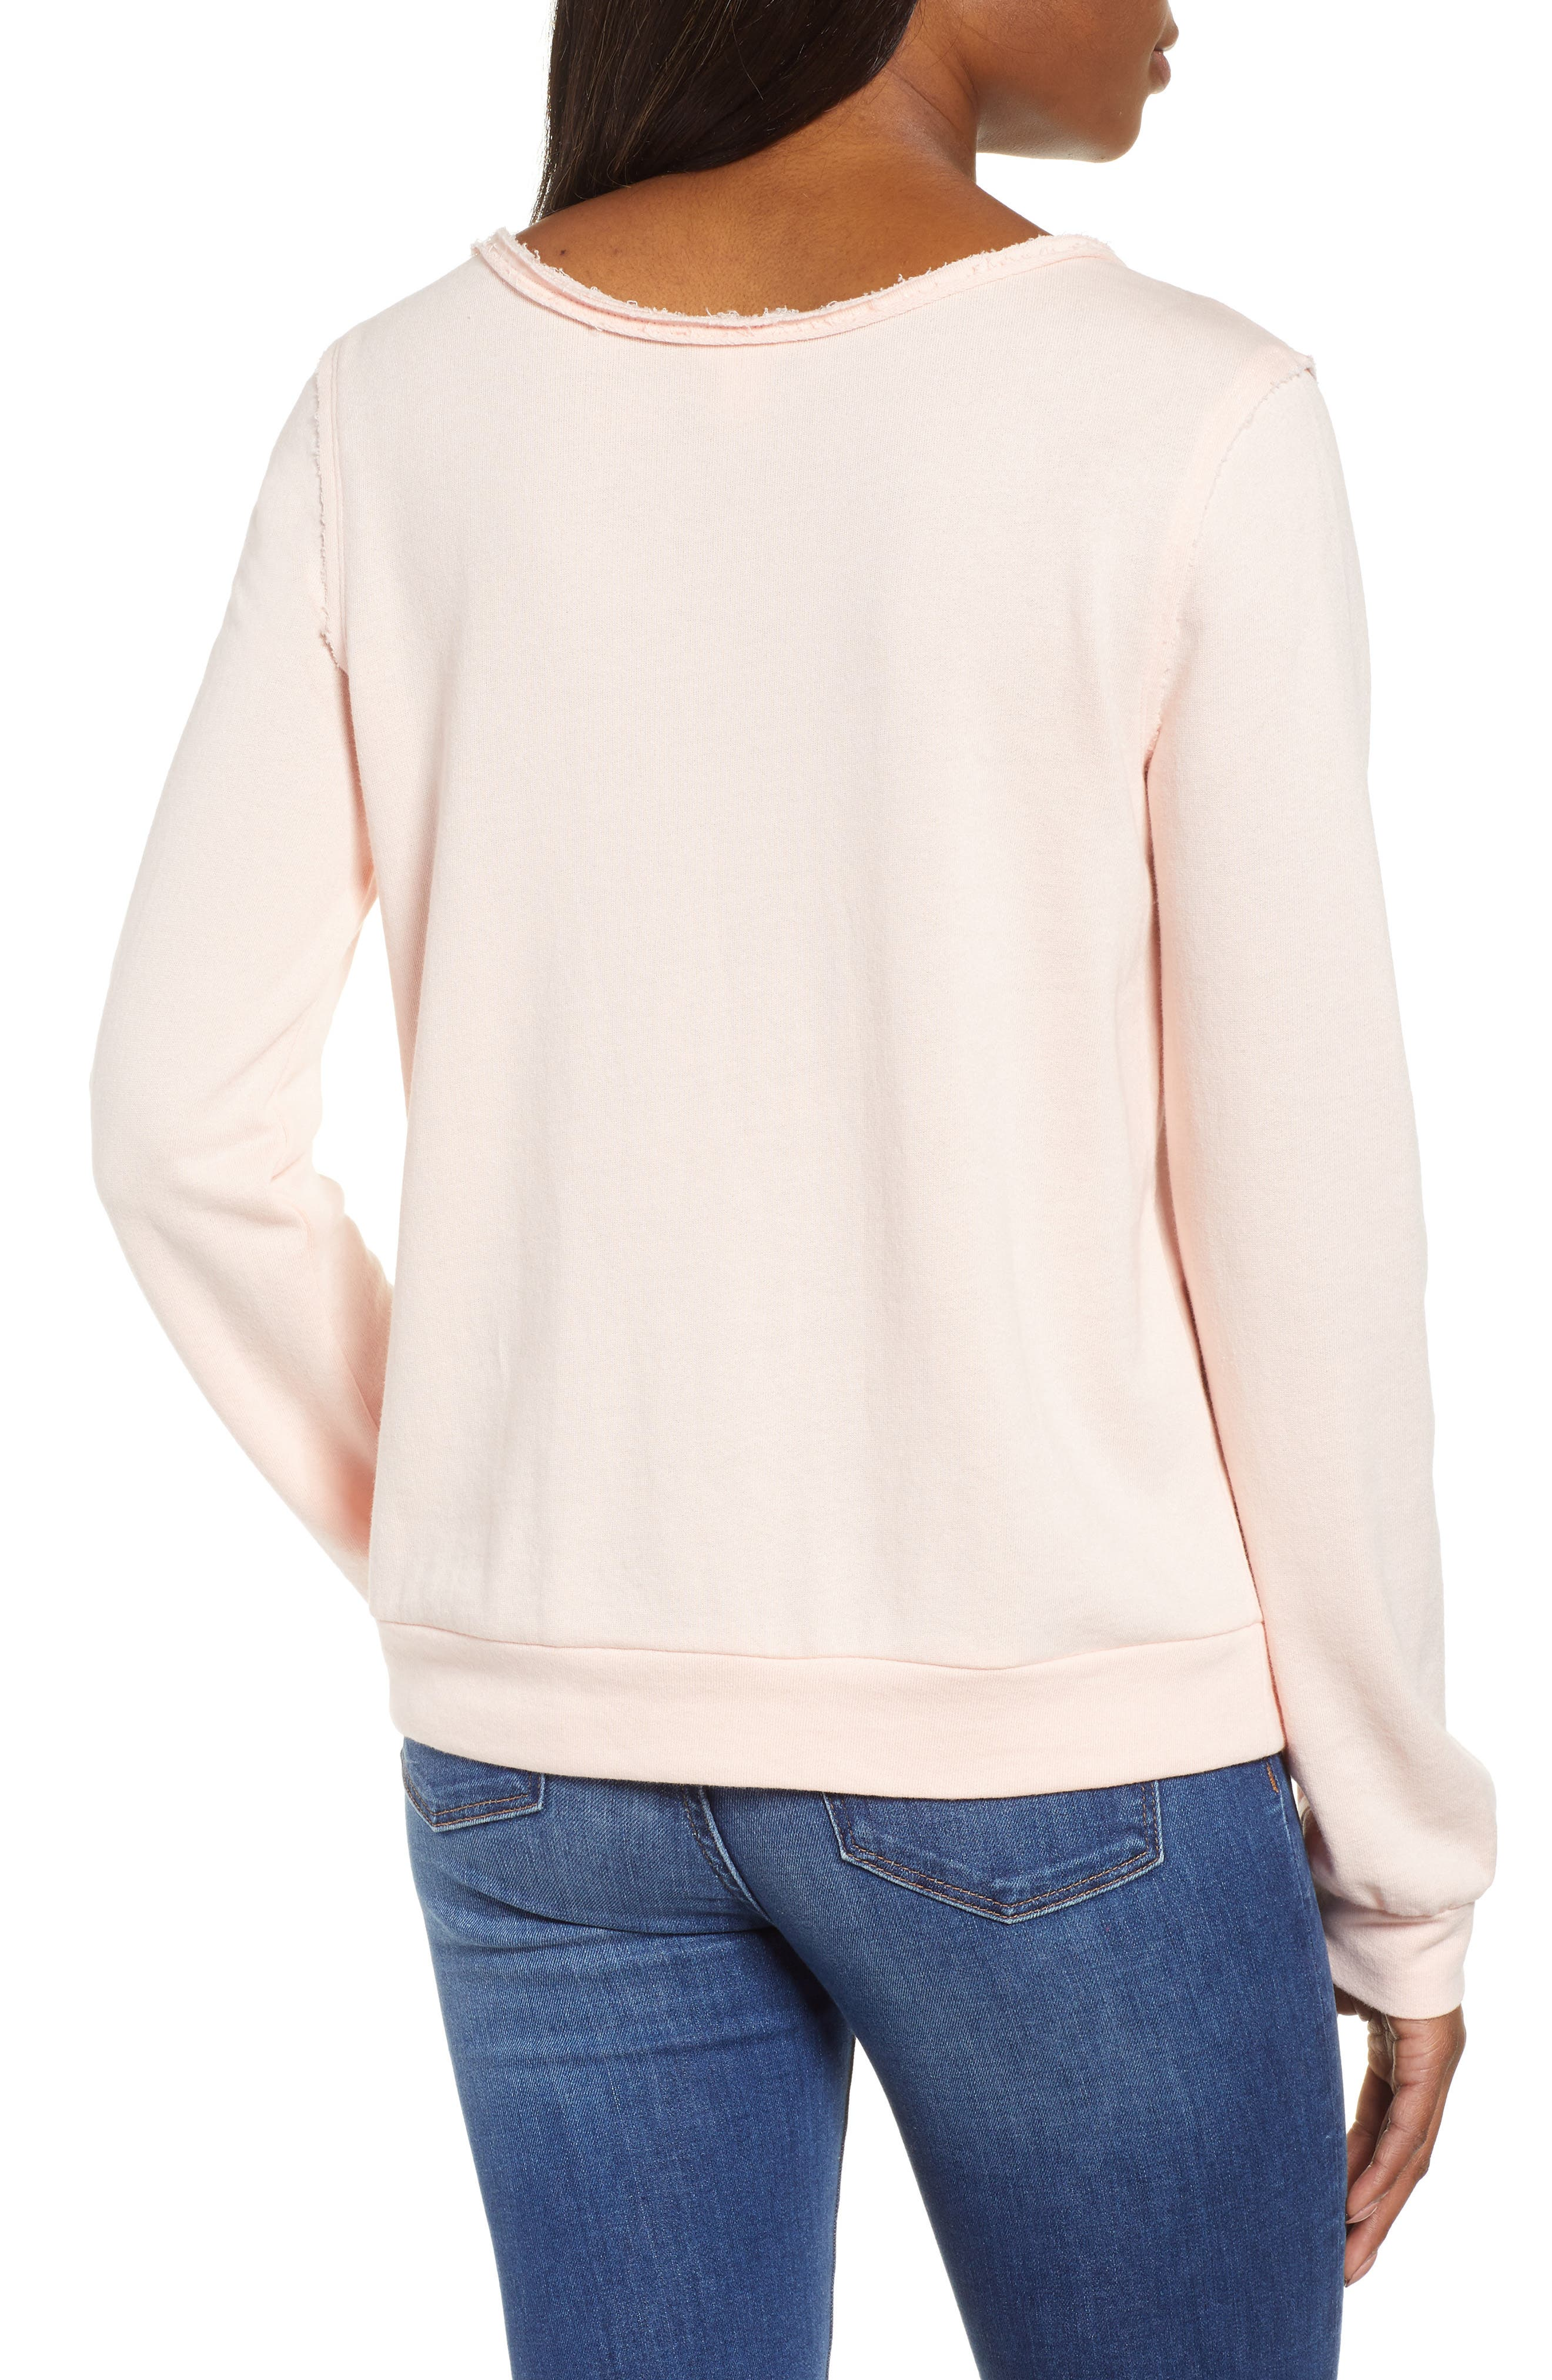 CASLON<SUP>®</SUP>, Embroidered Sweatshirt, Alternate thumbnail 2, color, PINK C EMBROIDERED